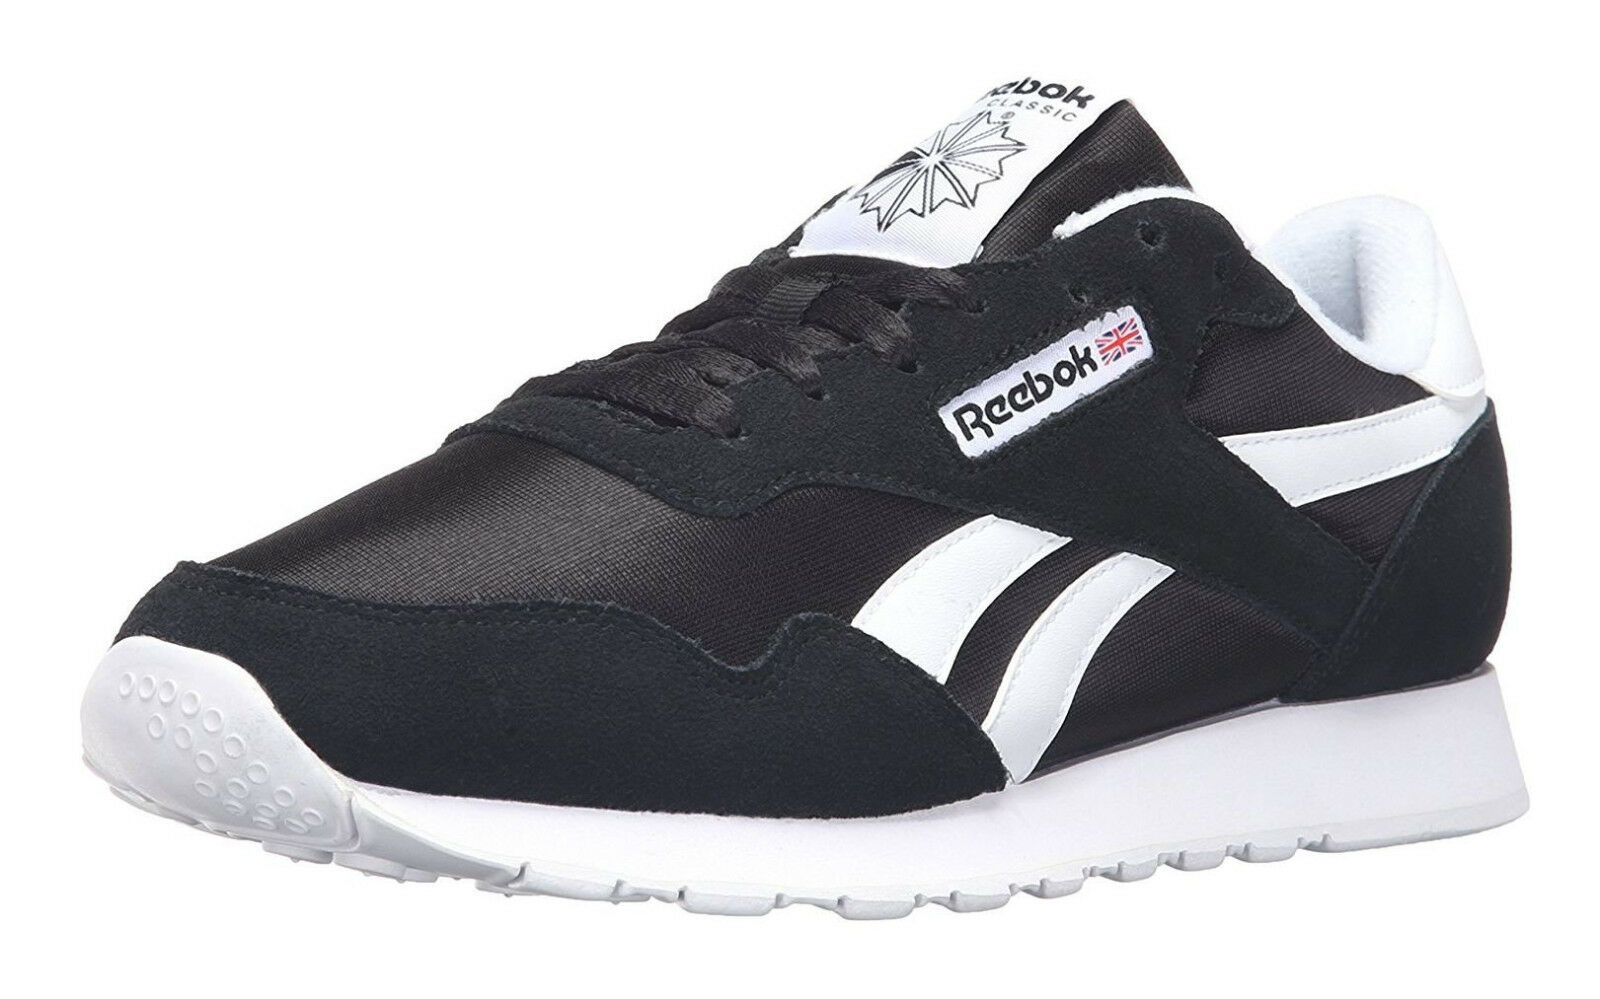 Мужская спортивная обувь Reebok Classic Nylon Black White Mens Running Tennis Shoes Item 6604